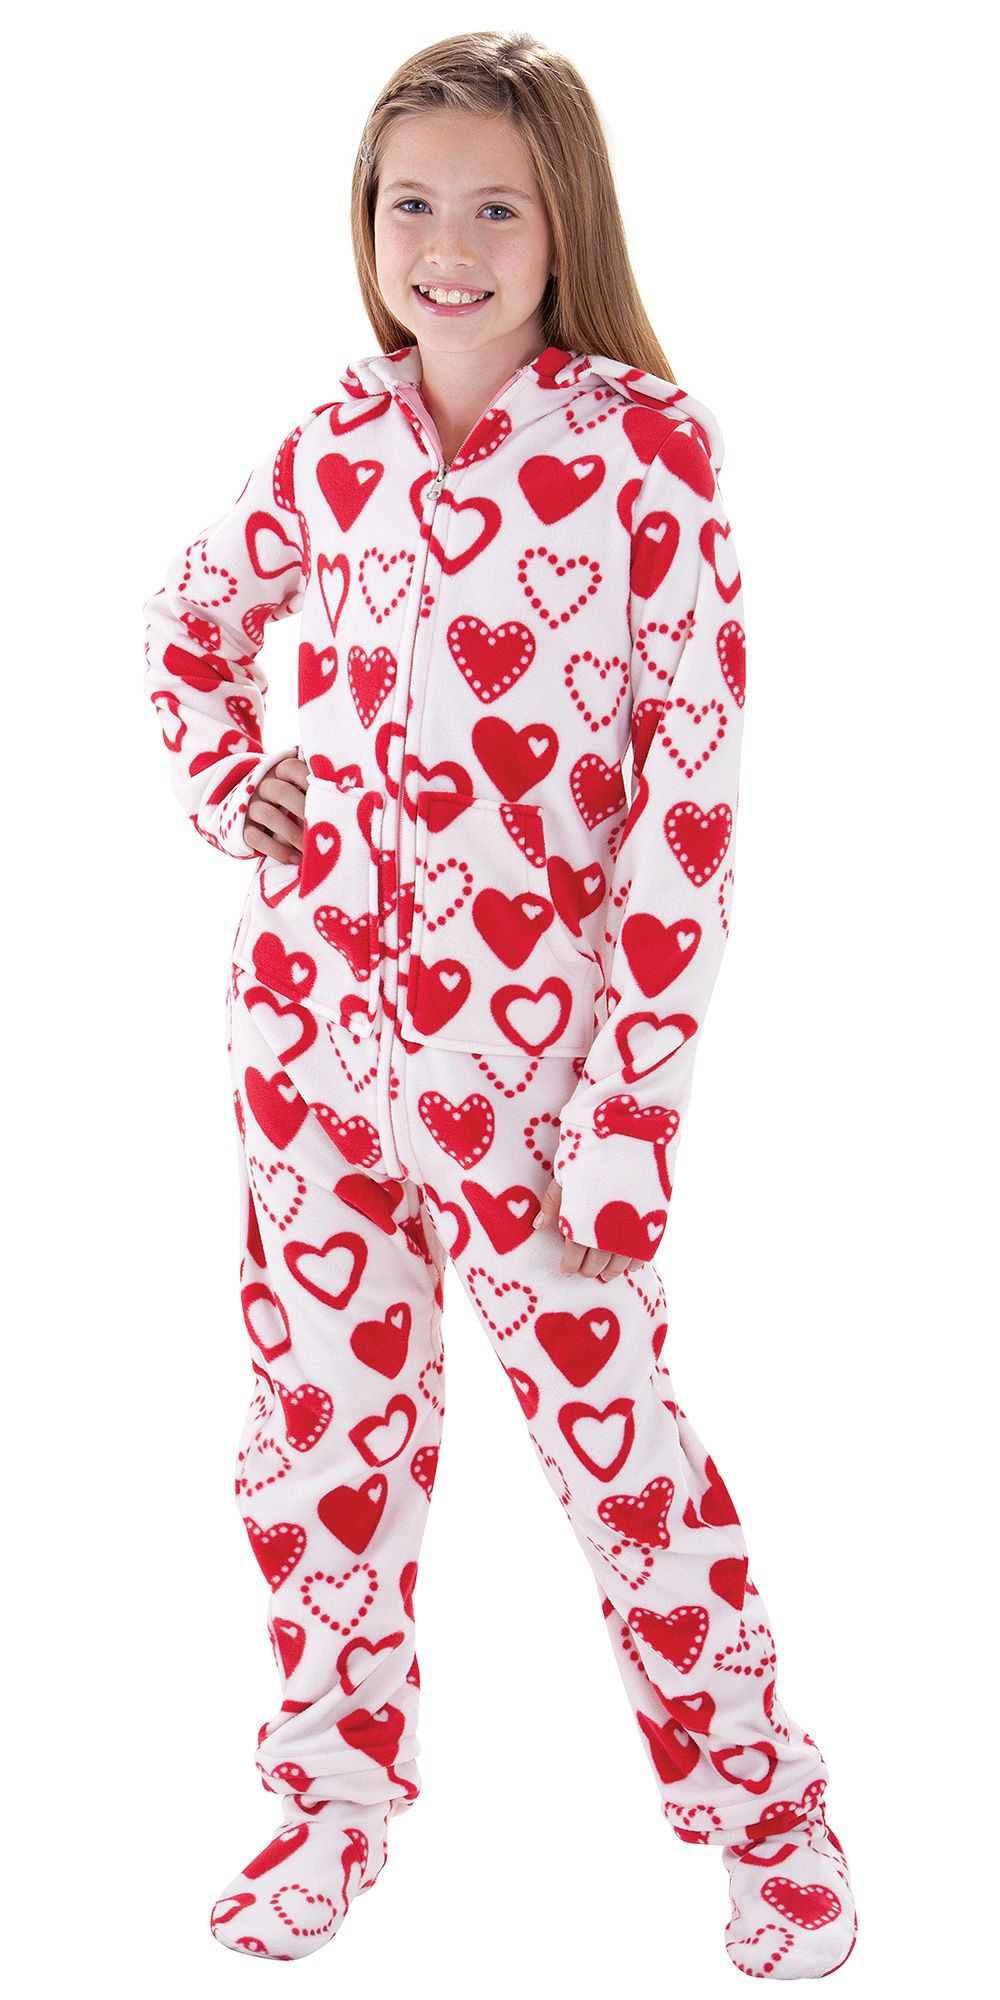 footie pajamas for girls 10 and up | Seasonal - Hoodie-Footie™ for ...